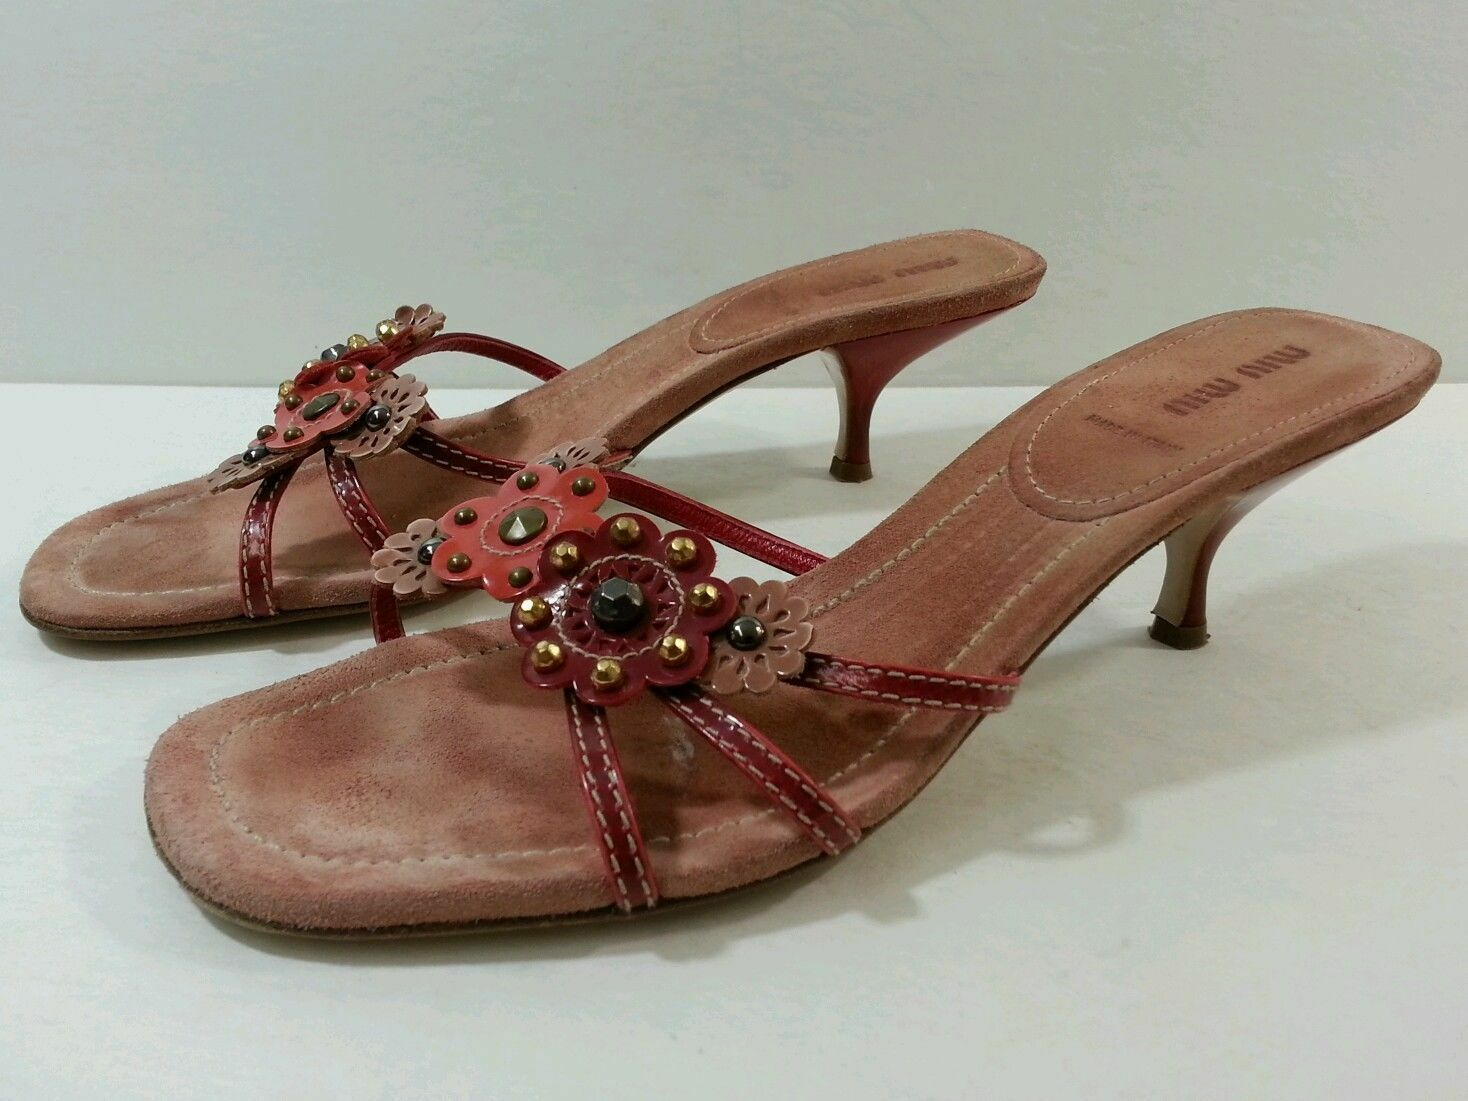 MIU MIU Beautiful Sandals - Size 40